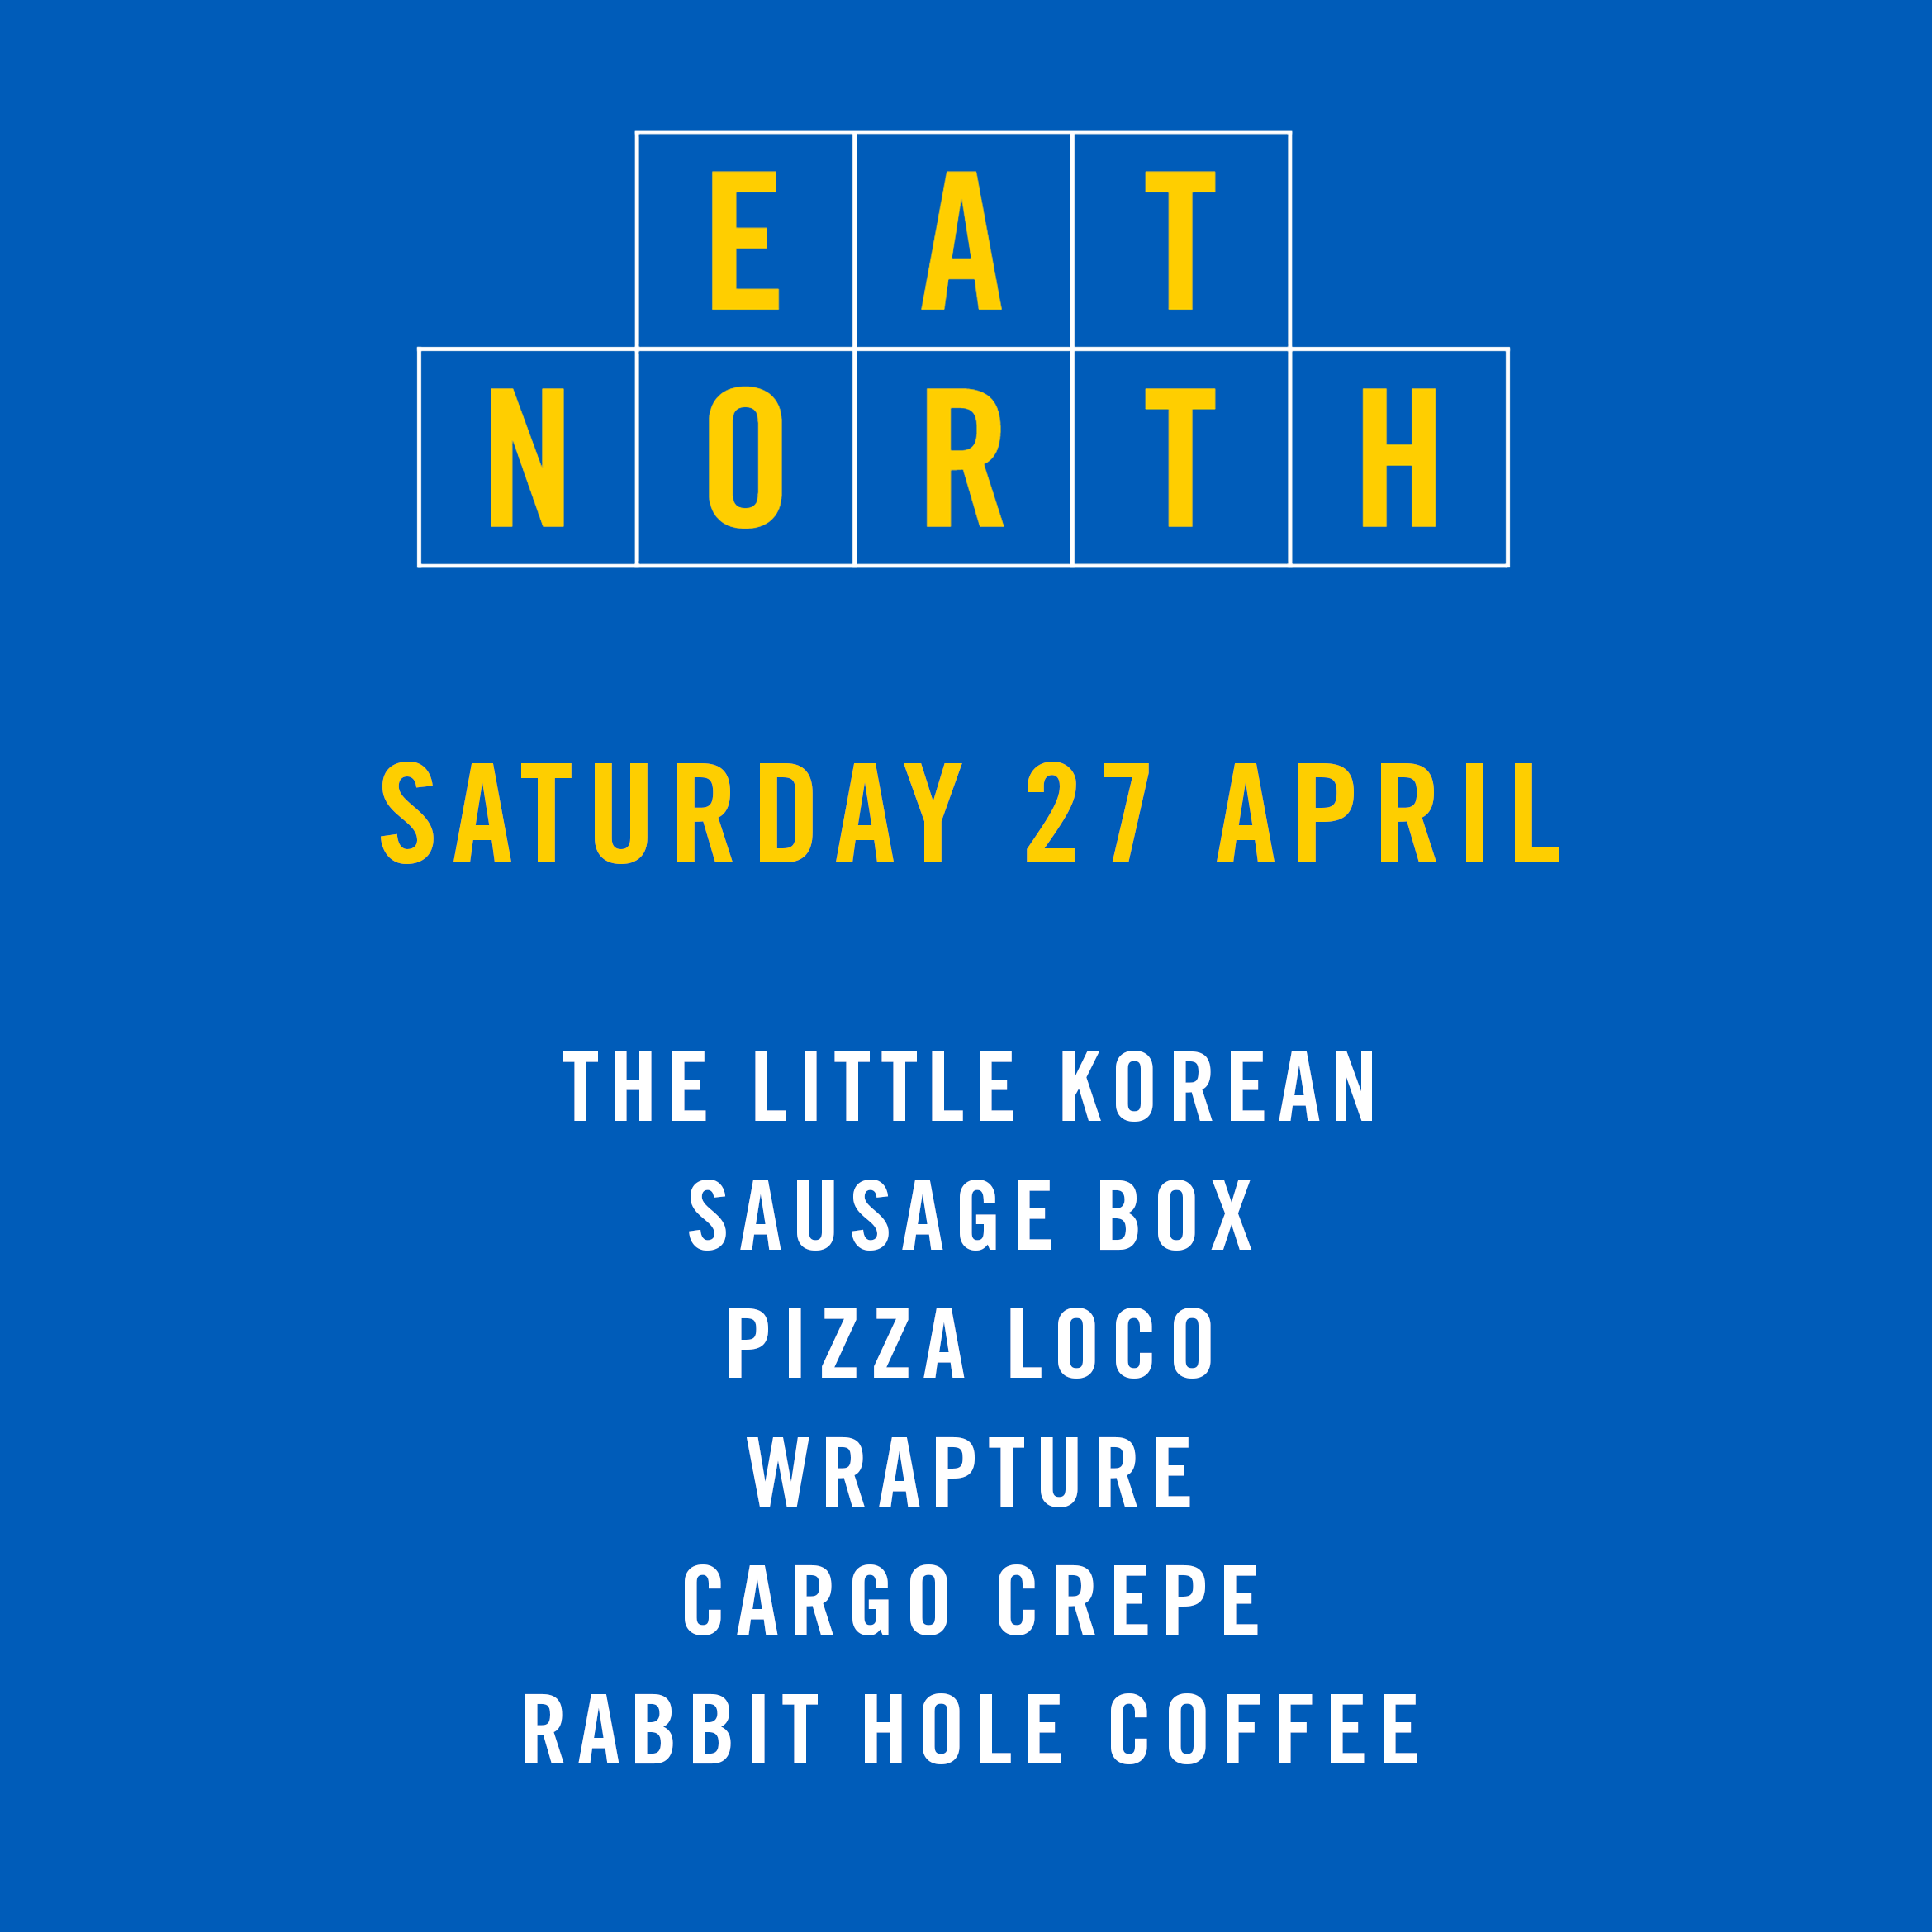 #EatNorth Saturday 27th April